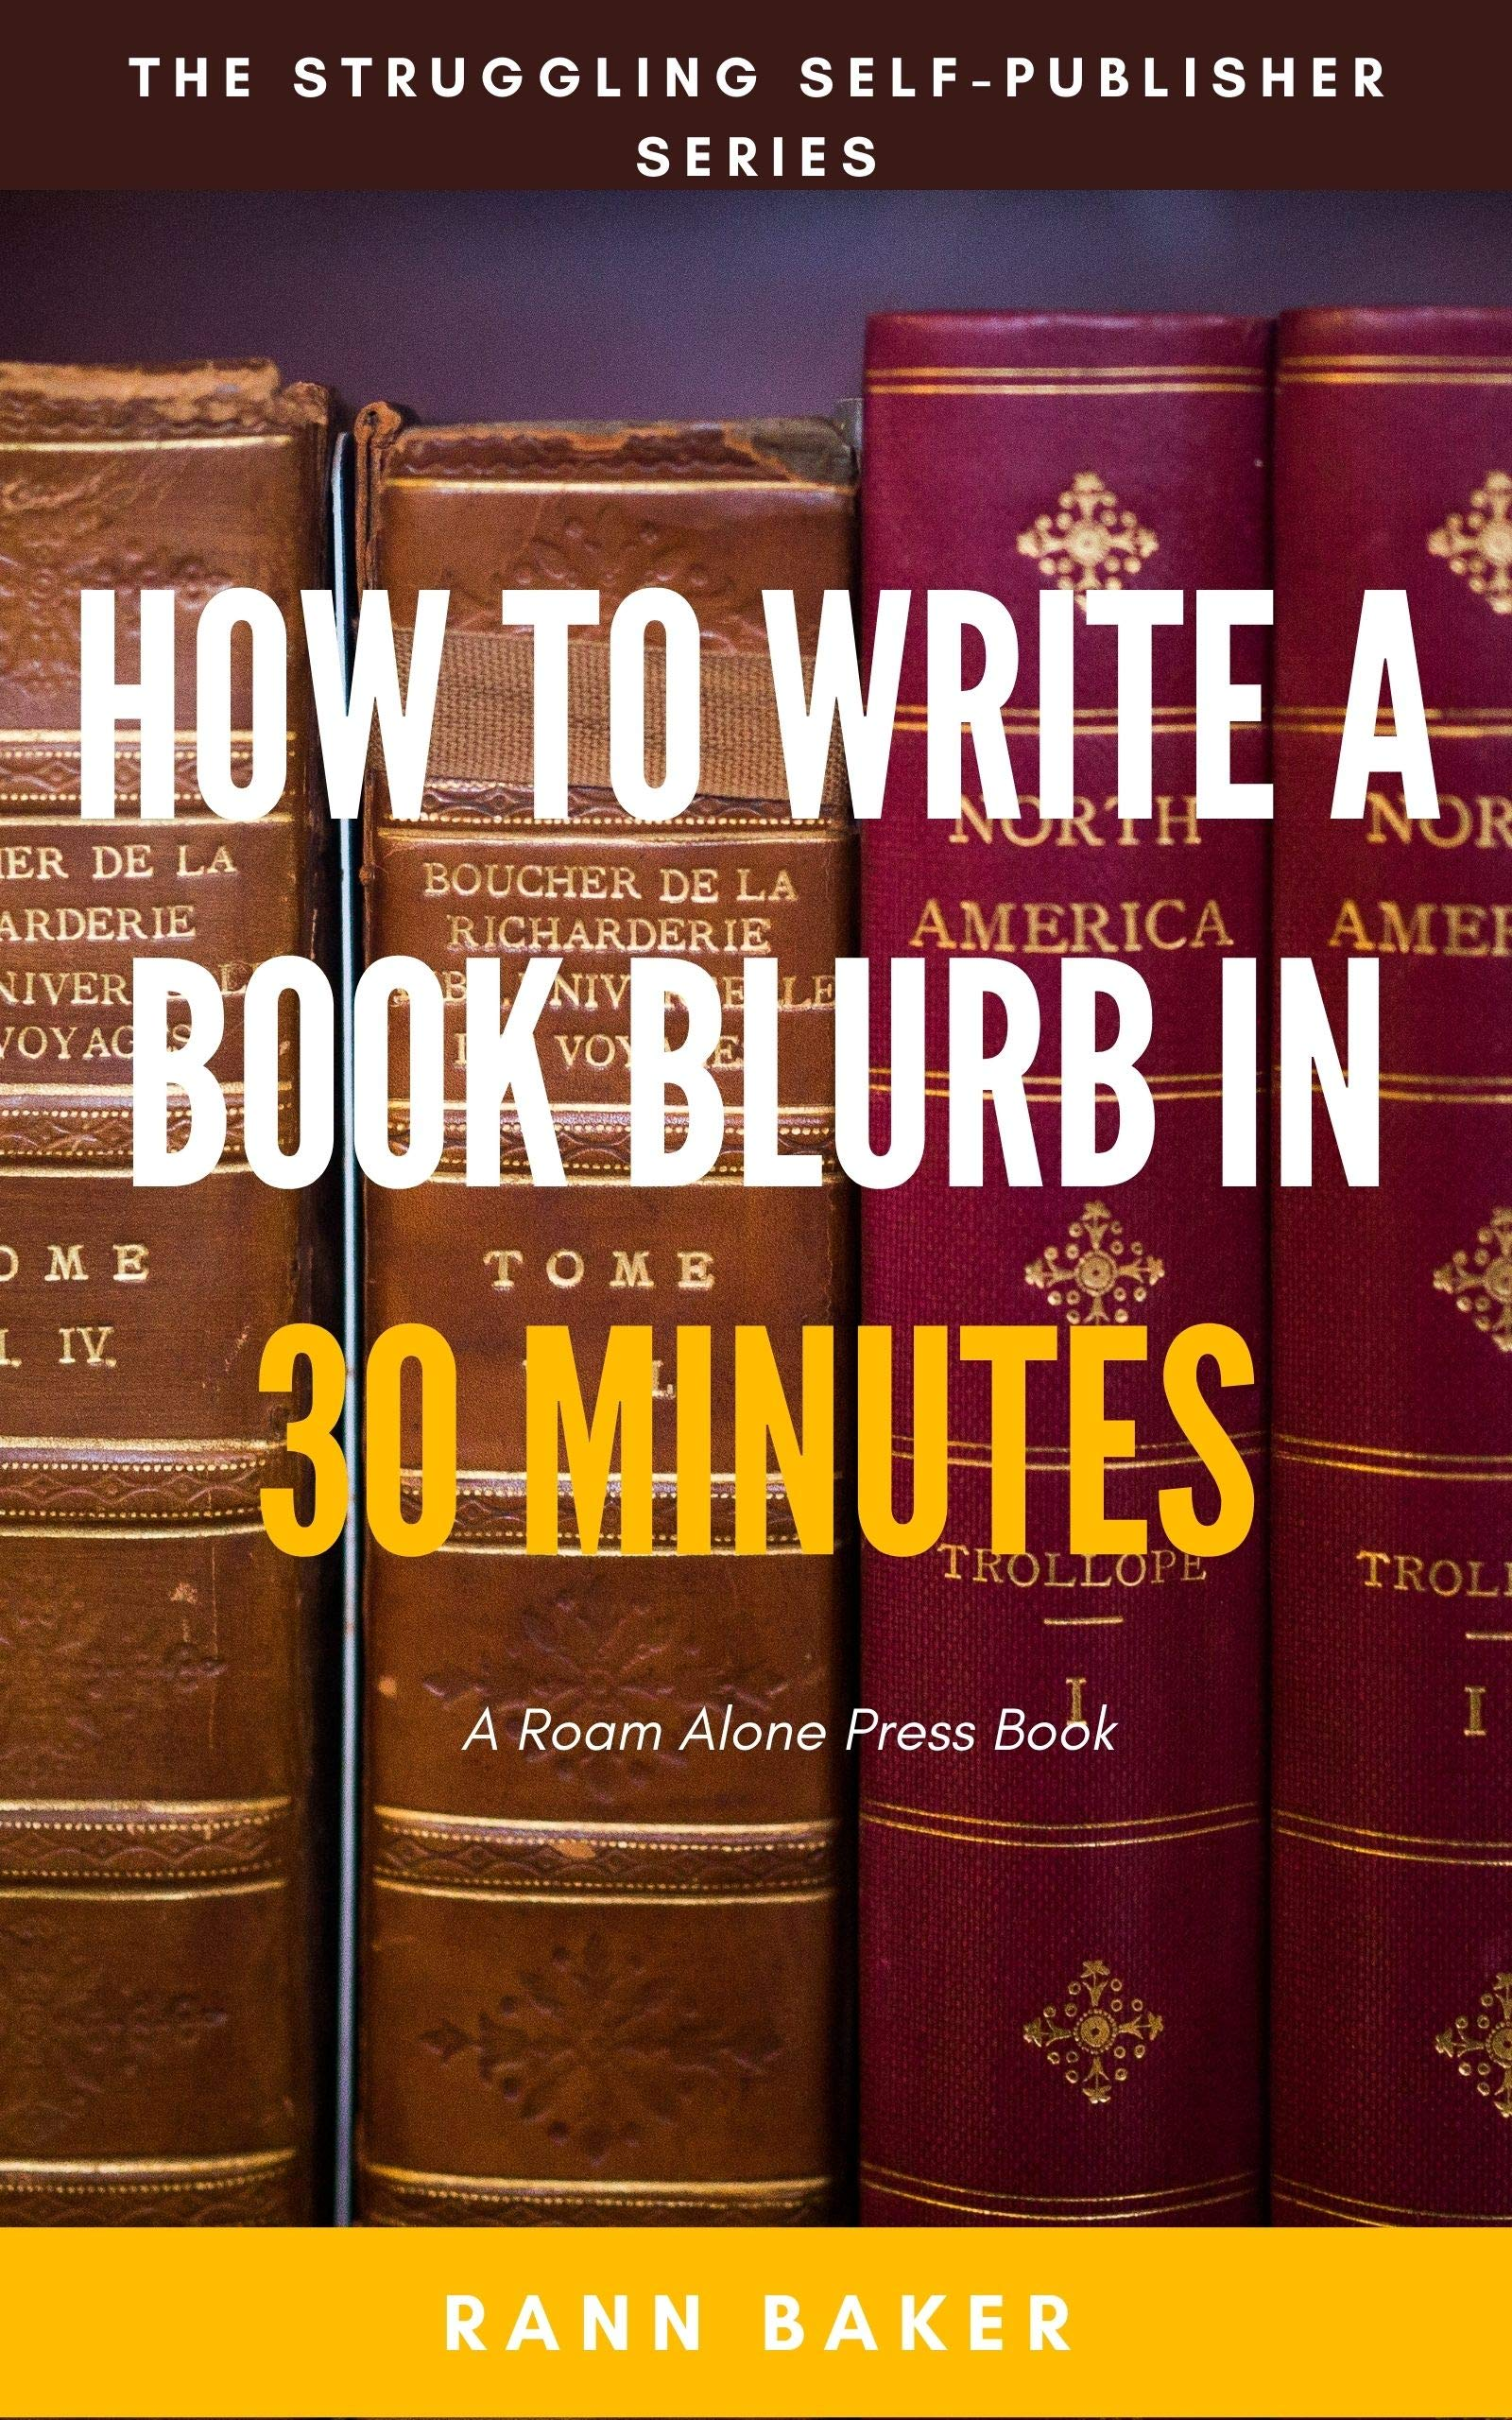 The P-S-R Blurb-Writing System: How to Write a Riveting Non-Fiction Book Blurb Under 30 Minutes and Turn Readers Into Buyers